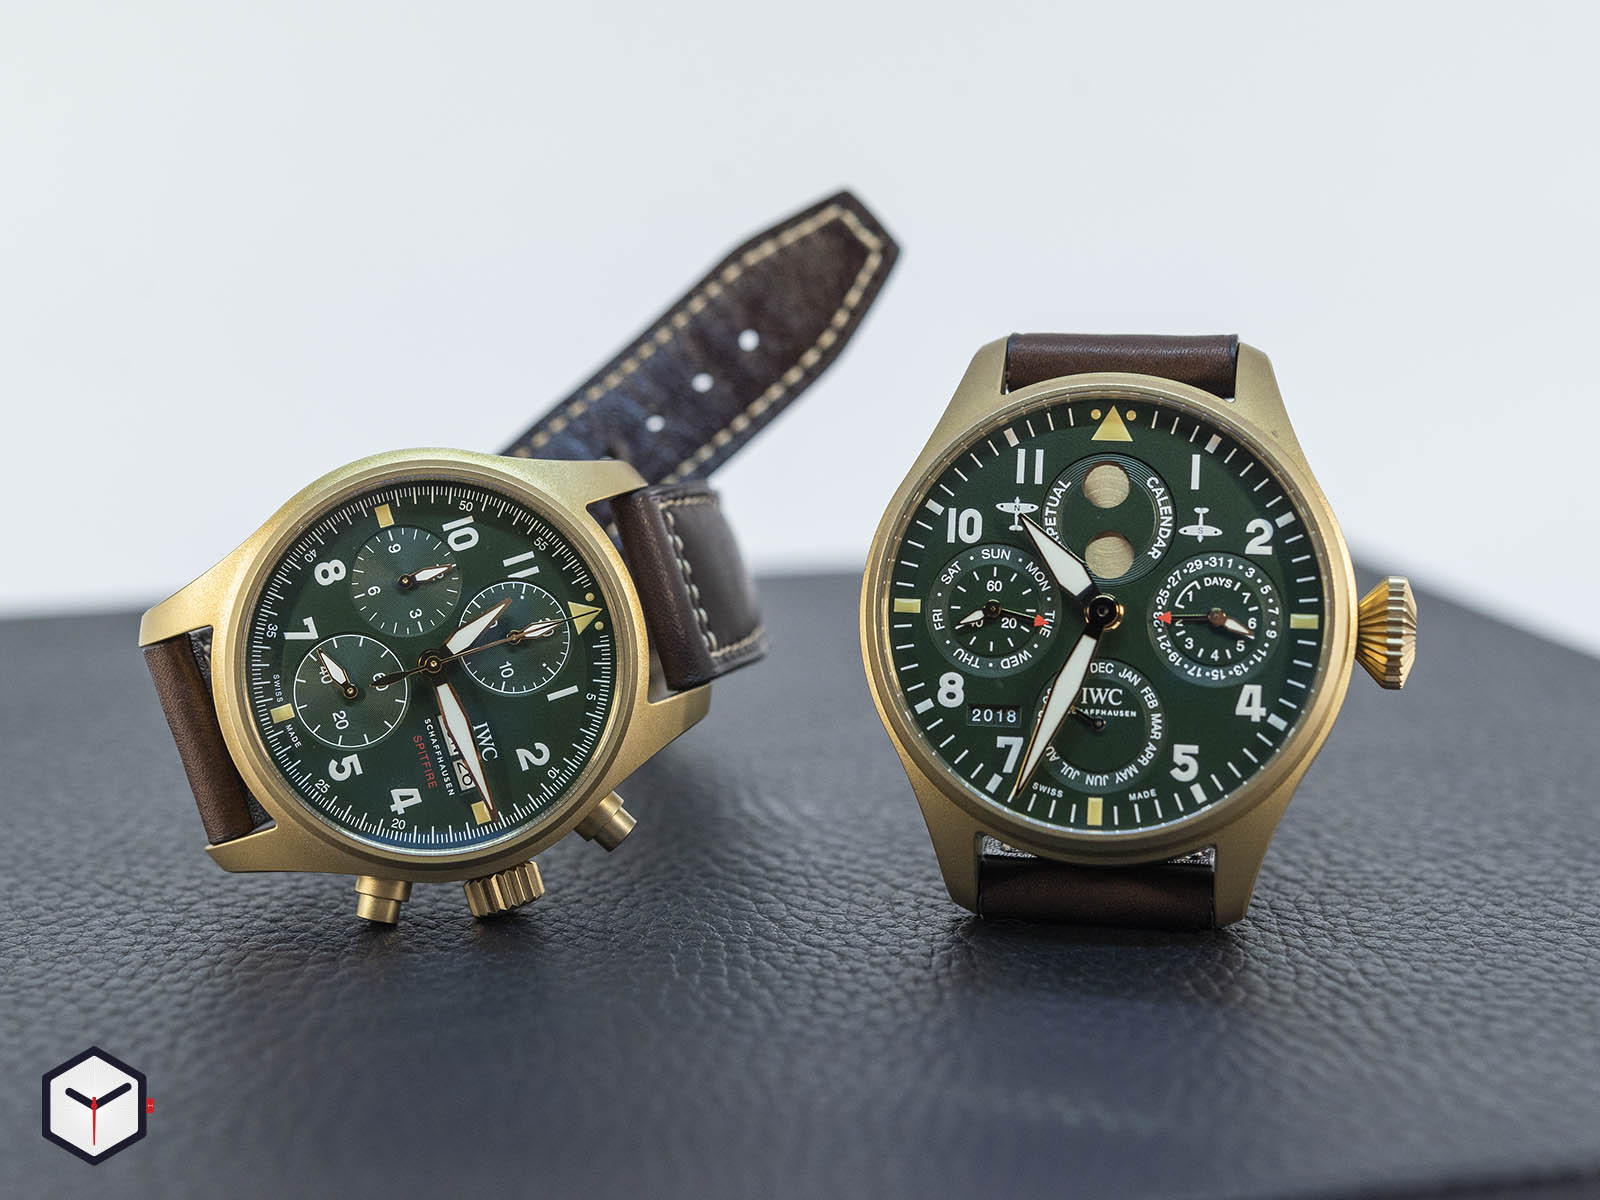 iw327101-iwc-pilot-s-watch-utc-spitfire-edition-mj271-8.jpg